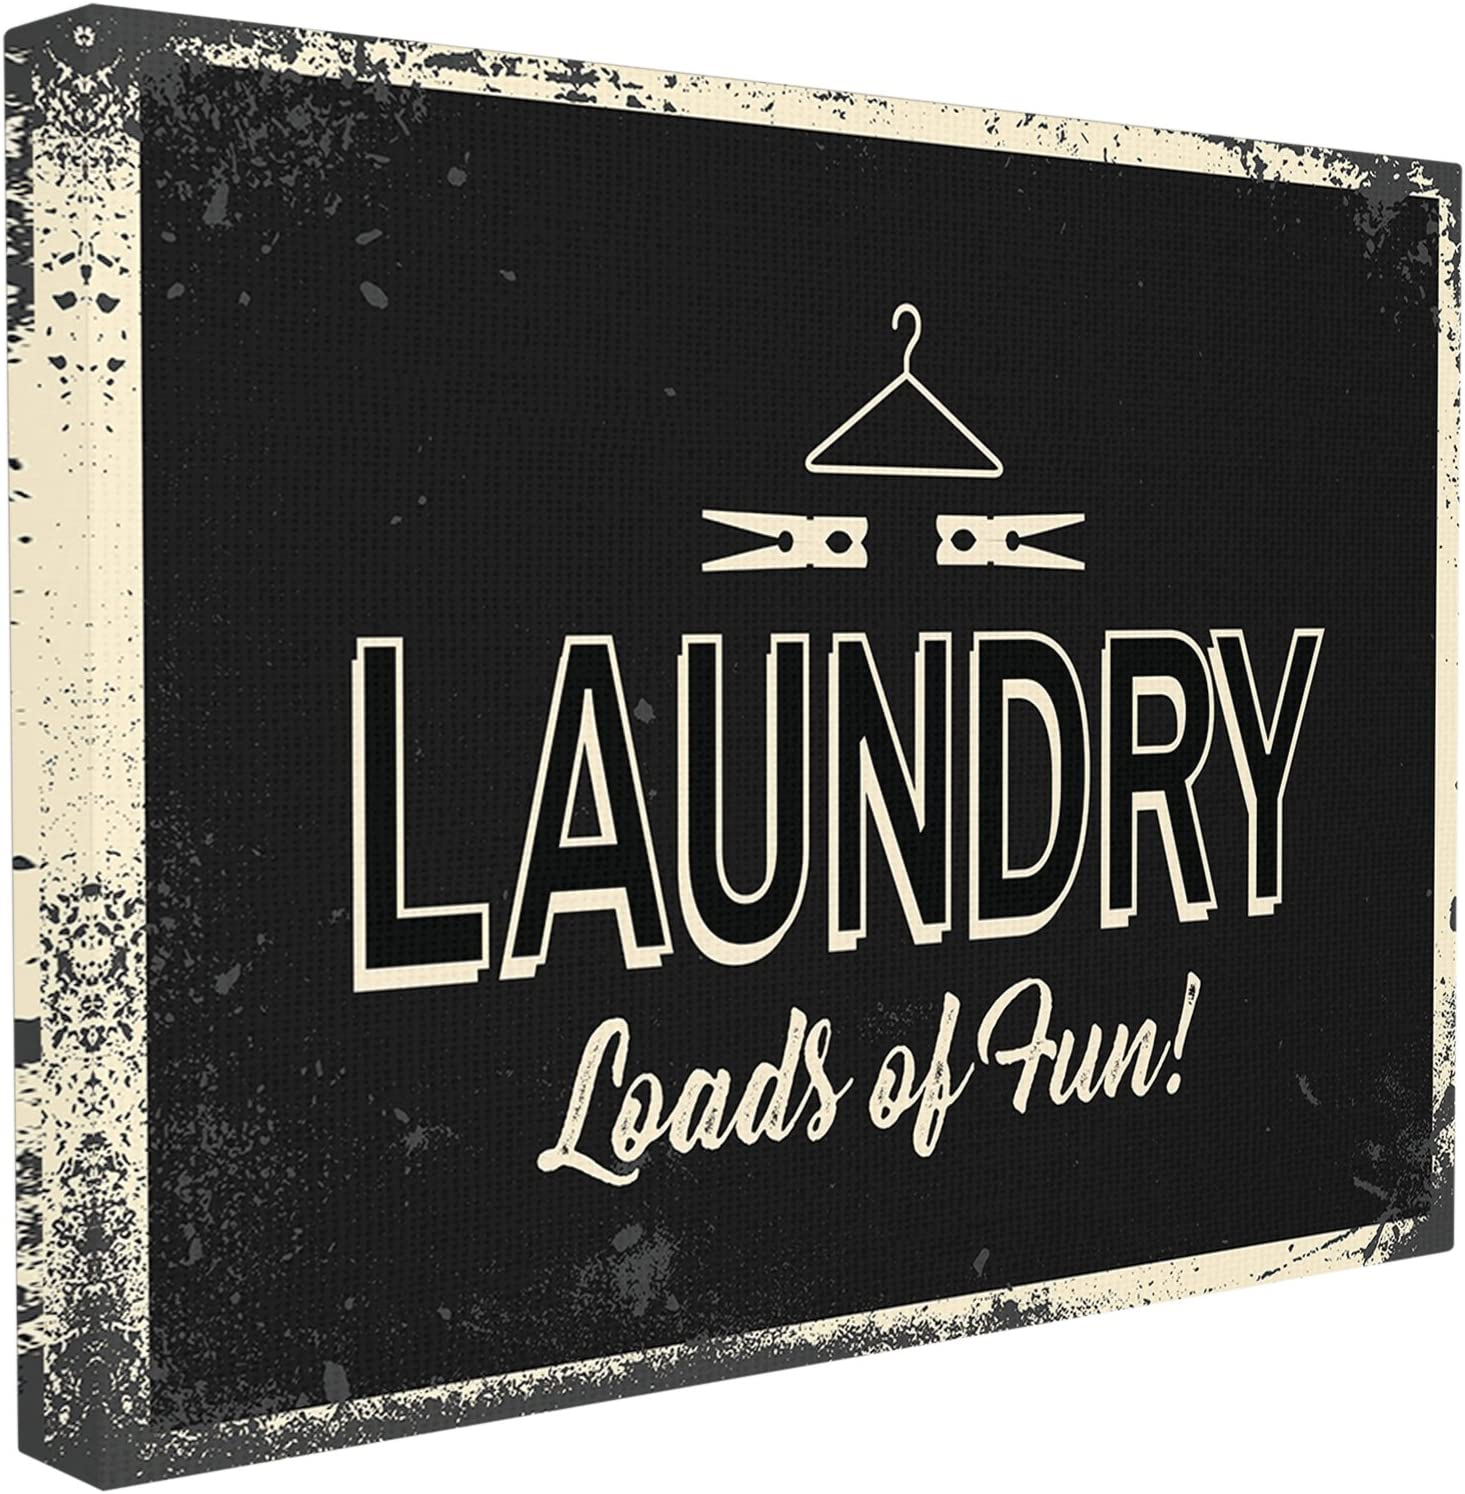 Proudly Made in USA Stupell Industries Laundry Loads of Fun Industrial Oversized Wall Plaque Art